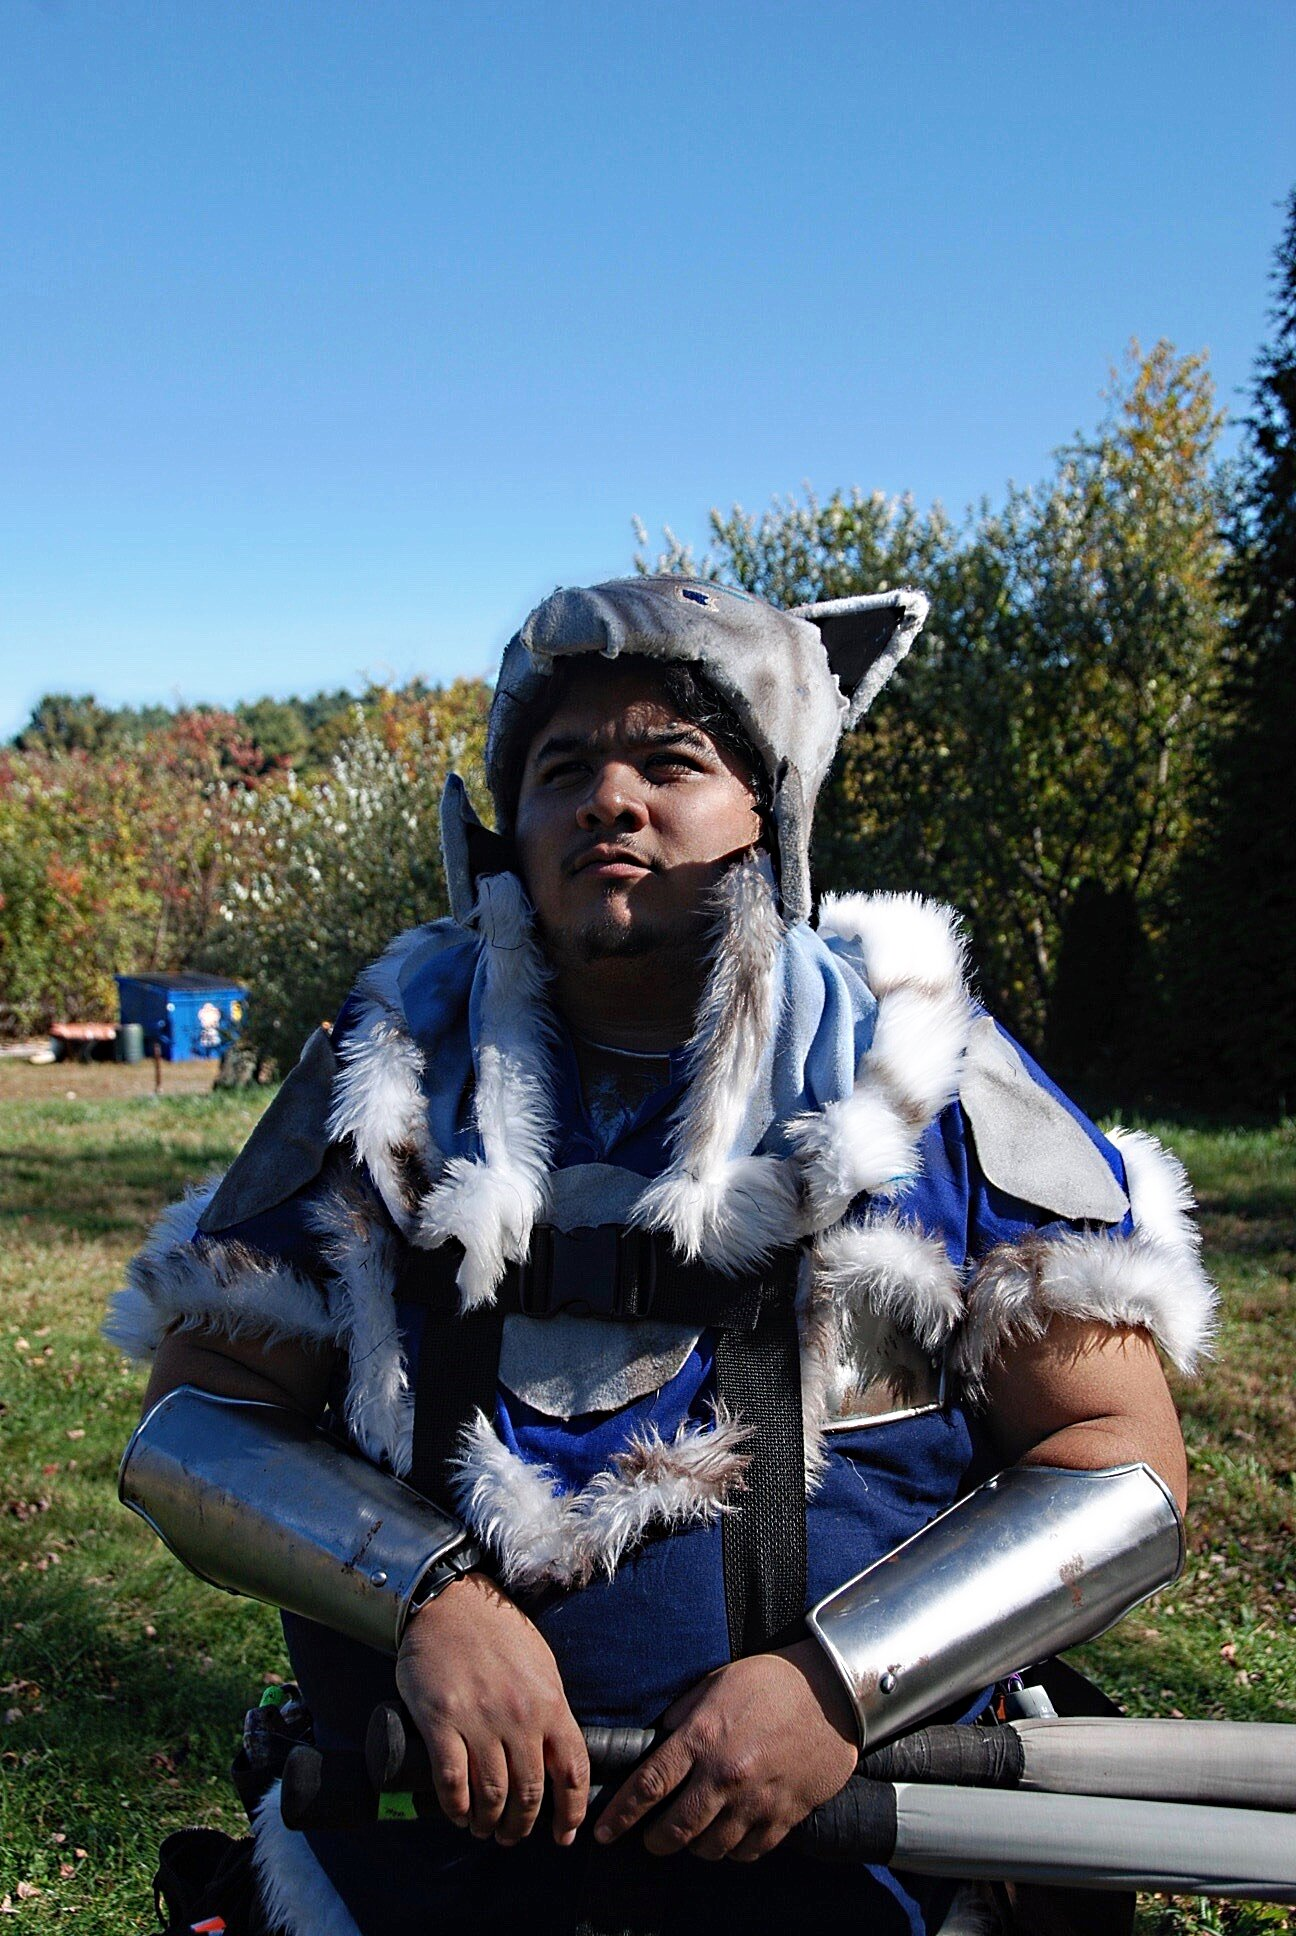 Updates! 10/27 - Society Memberships application is up!https://www.dystopiarisingma.com/societiesFinancial Institutions are also finished!https://www.dystopiarisingma.com/institutionsFinally, Thank you everybody who participated in the Costume Contest from last month!1st Place: Frozen North Warrior Lance2nd Place: Stryx, Plaid & Jolly's Frankenstein Group3rd Place: Fitz' Hedon Evil Twin BrotherWinner of the Personal Plot Mod was….Aaron, pilot of Killian & Chance Lincoln!Finally, we will reveal more info of our prereg goals and news this week!#BlaineWillbeBack